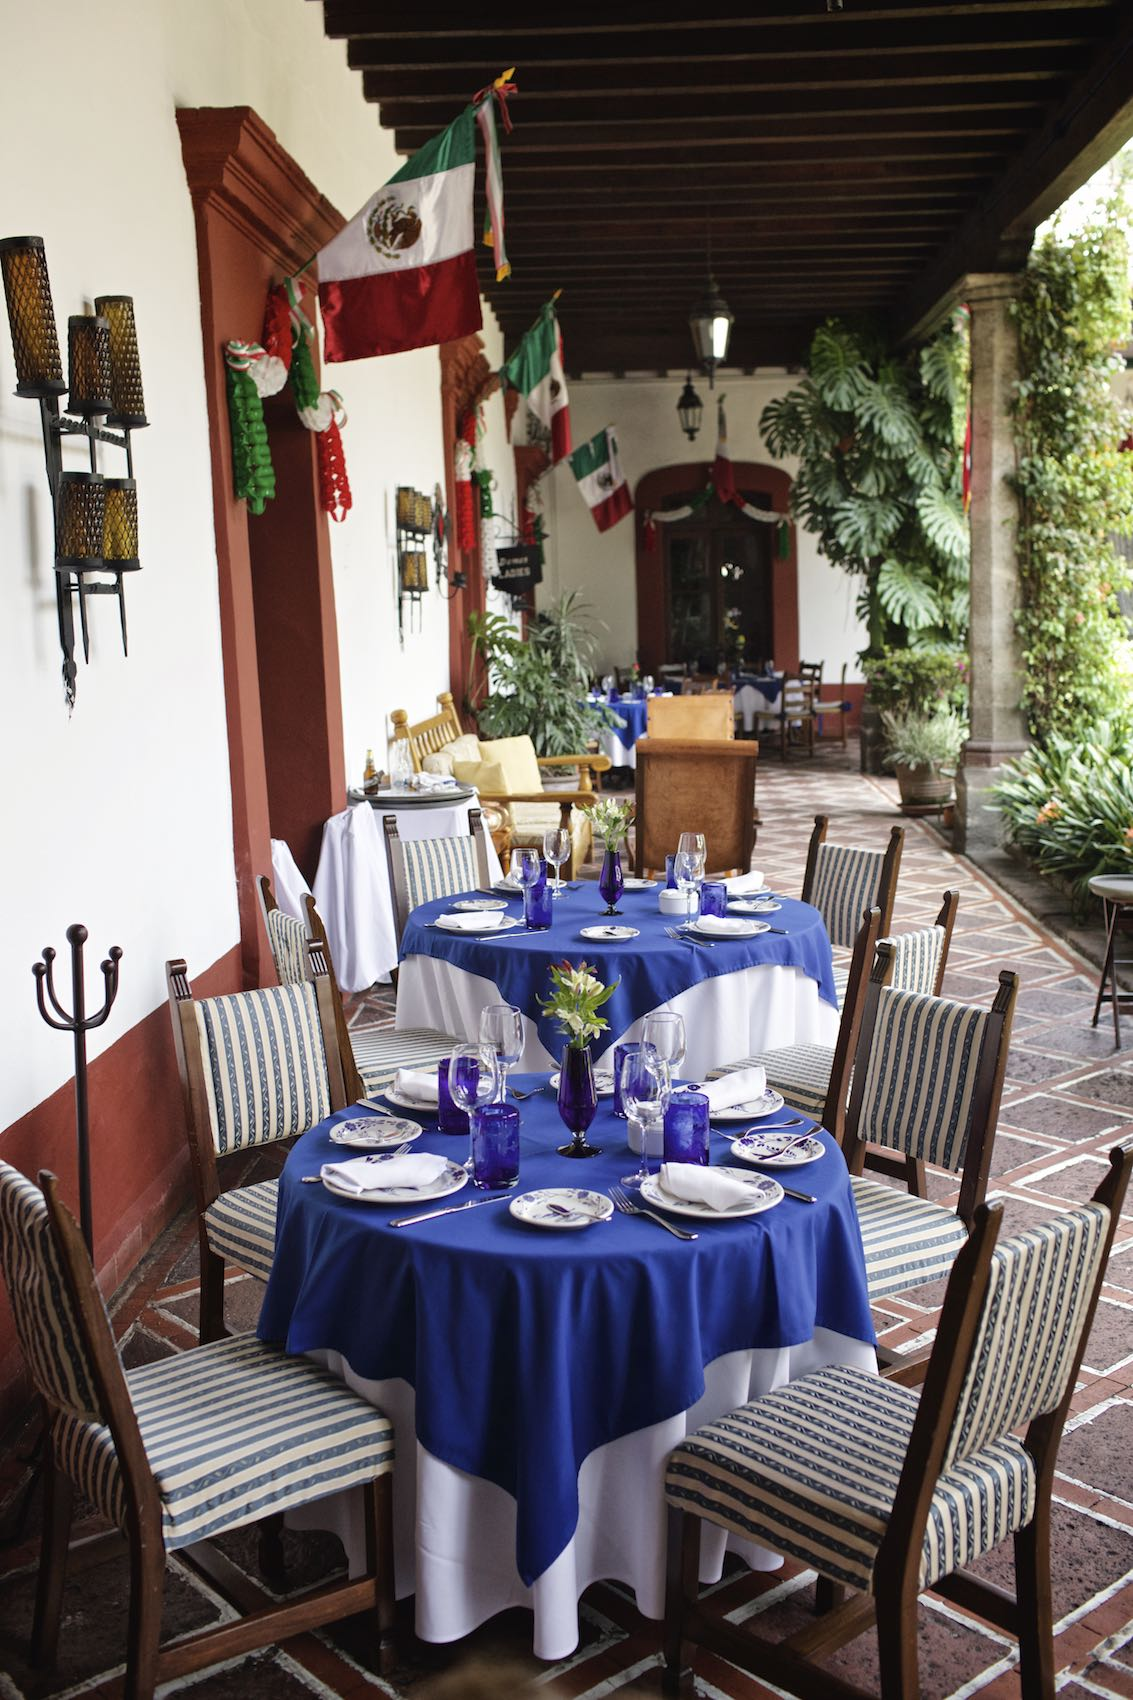 Jody Horton Photography - Restaurant patio in Mexico City.